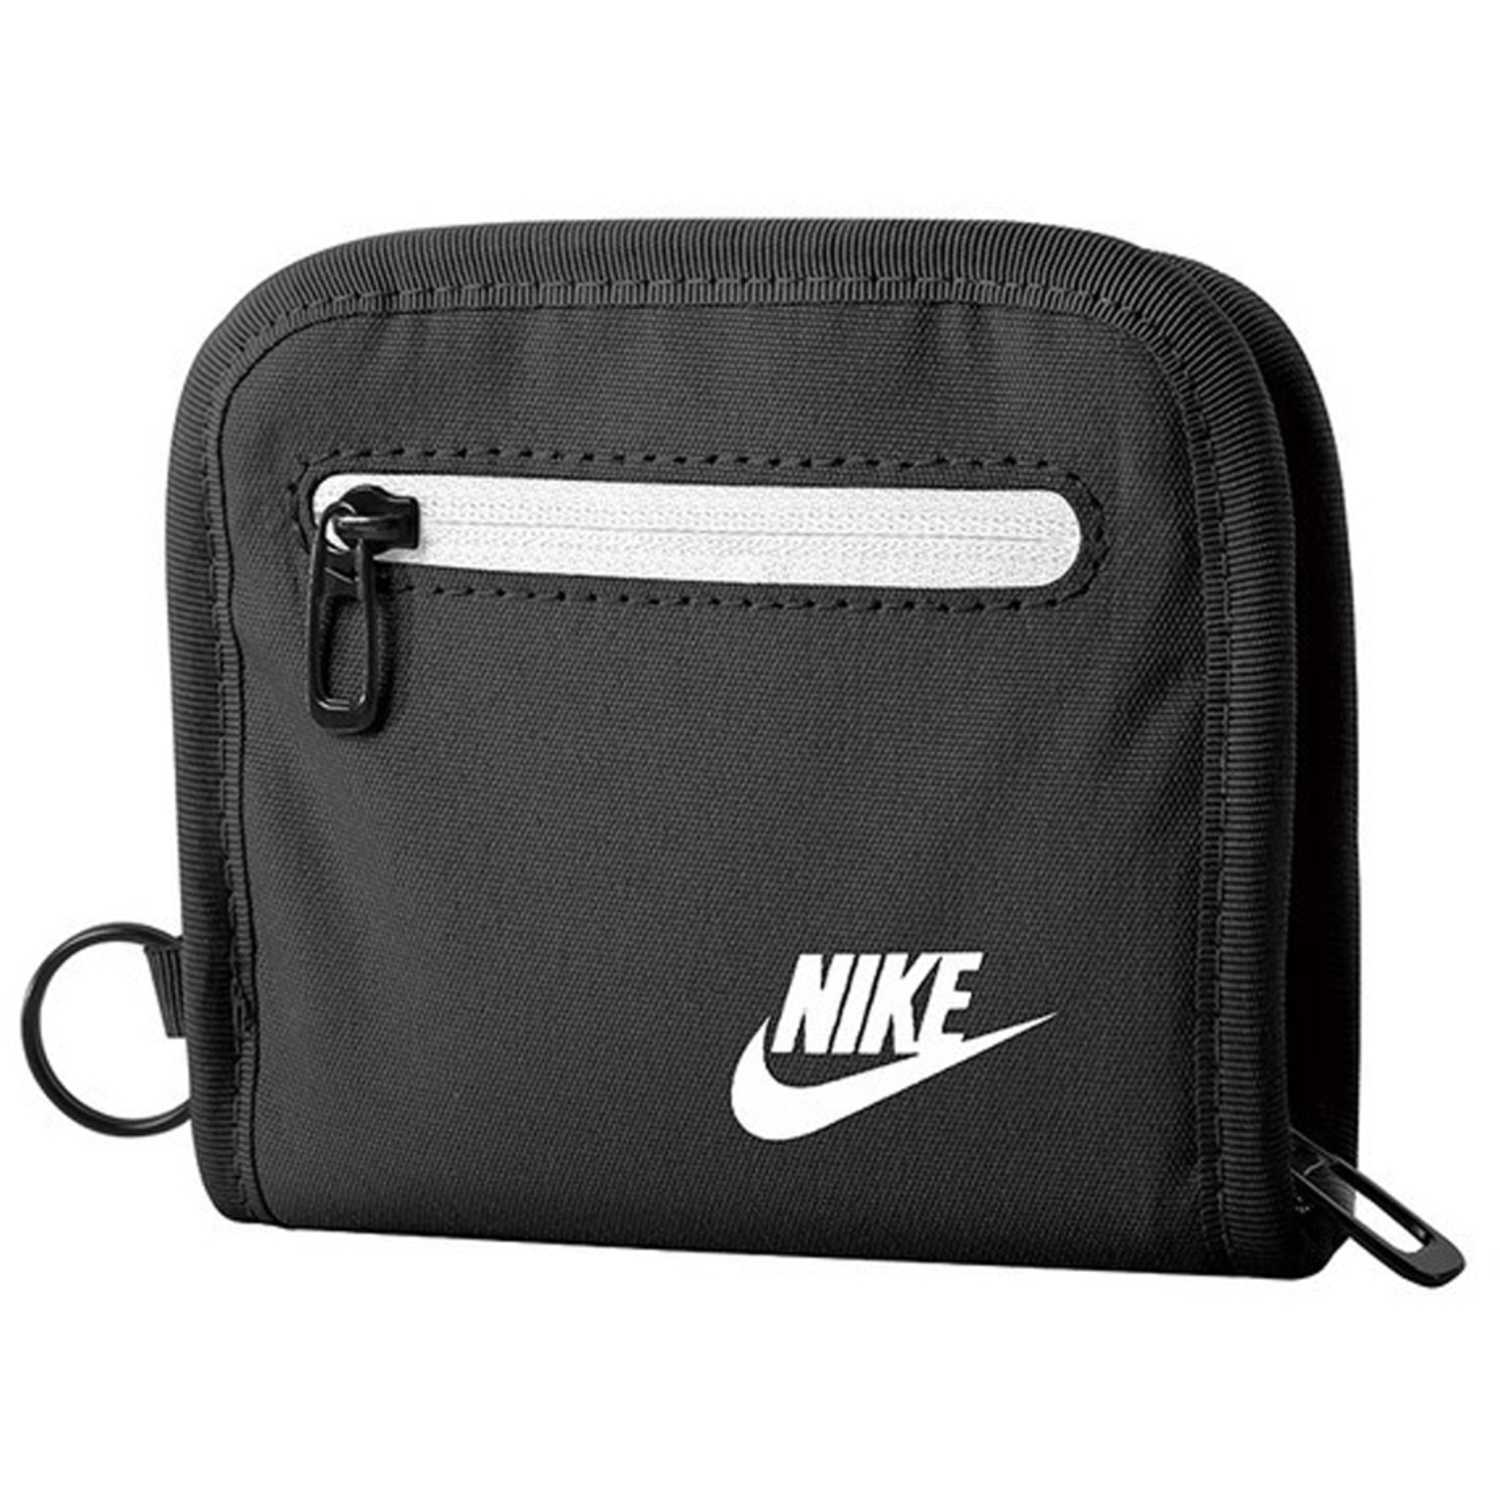 Nike nike heritage small wallet Negro Billeteras